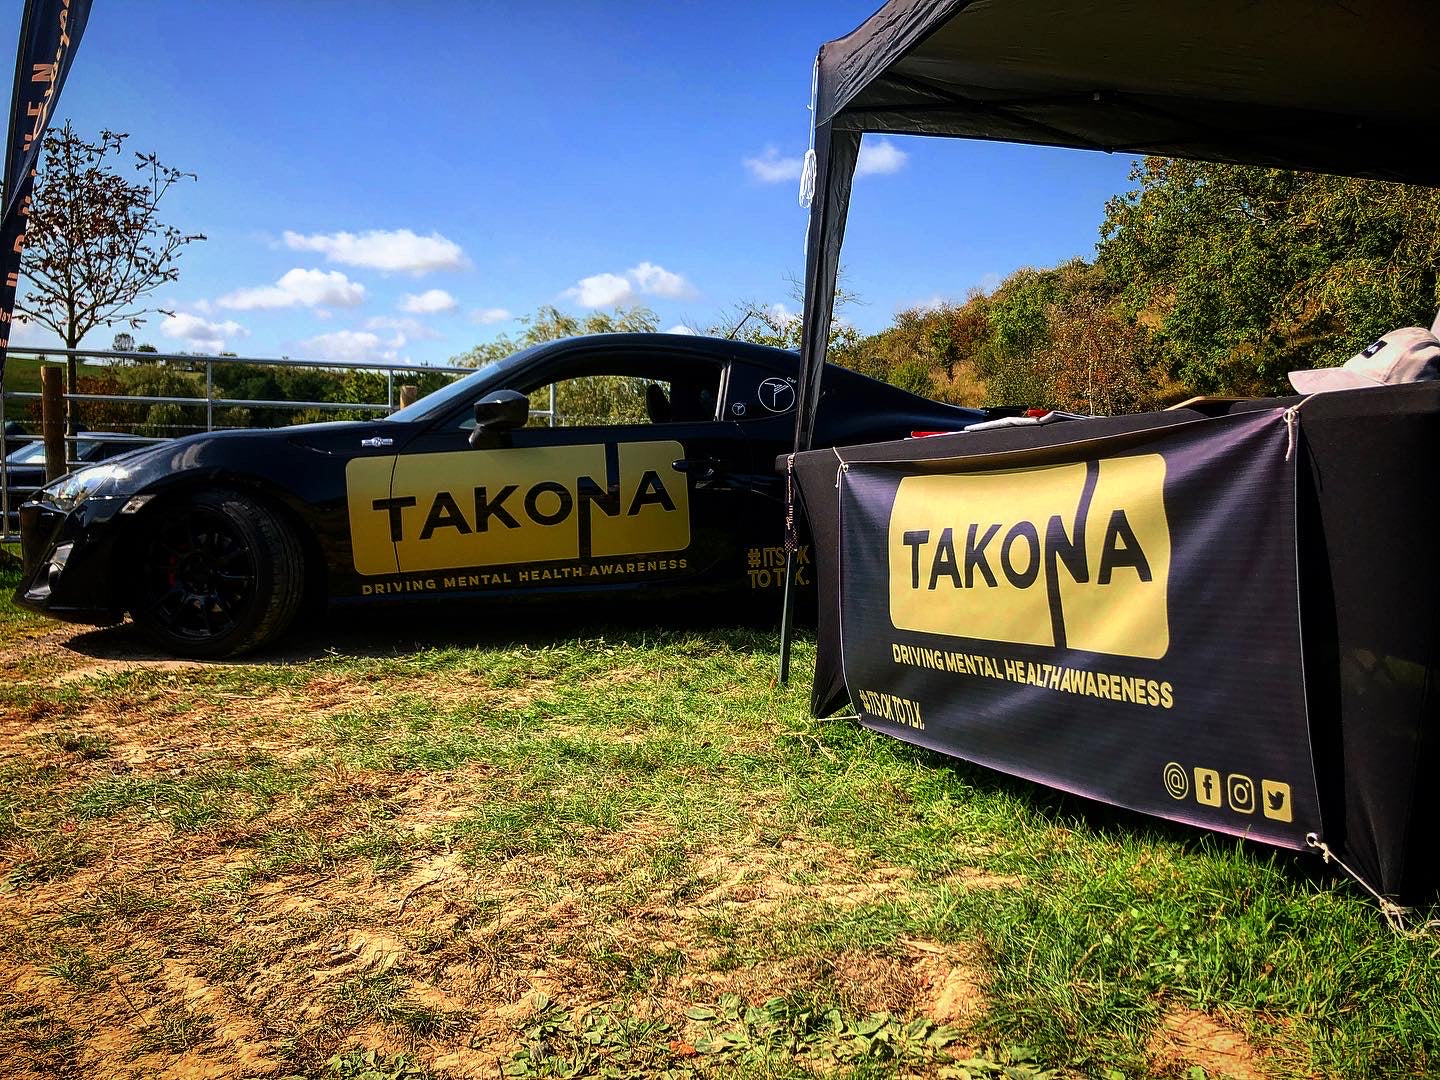 Takona GT86 along with Takona Stand at Fuel Fest 2020